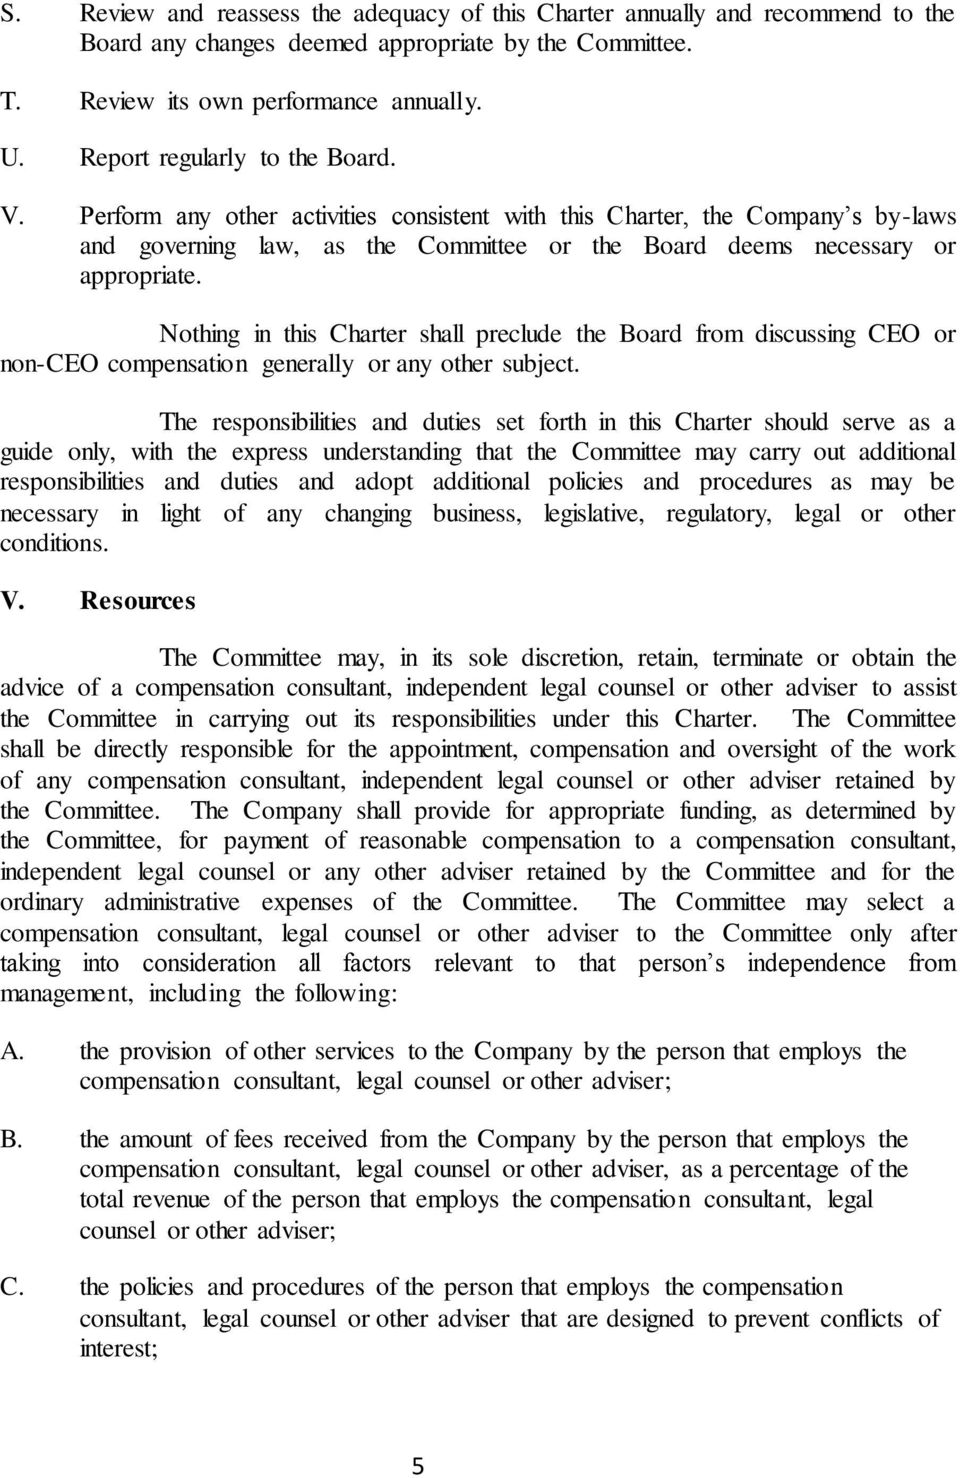 Nothing in this Charter shall preclude the Board from discussing CEO or non-ceo compensation generally or any other subject.